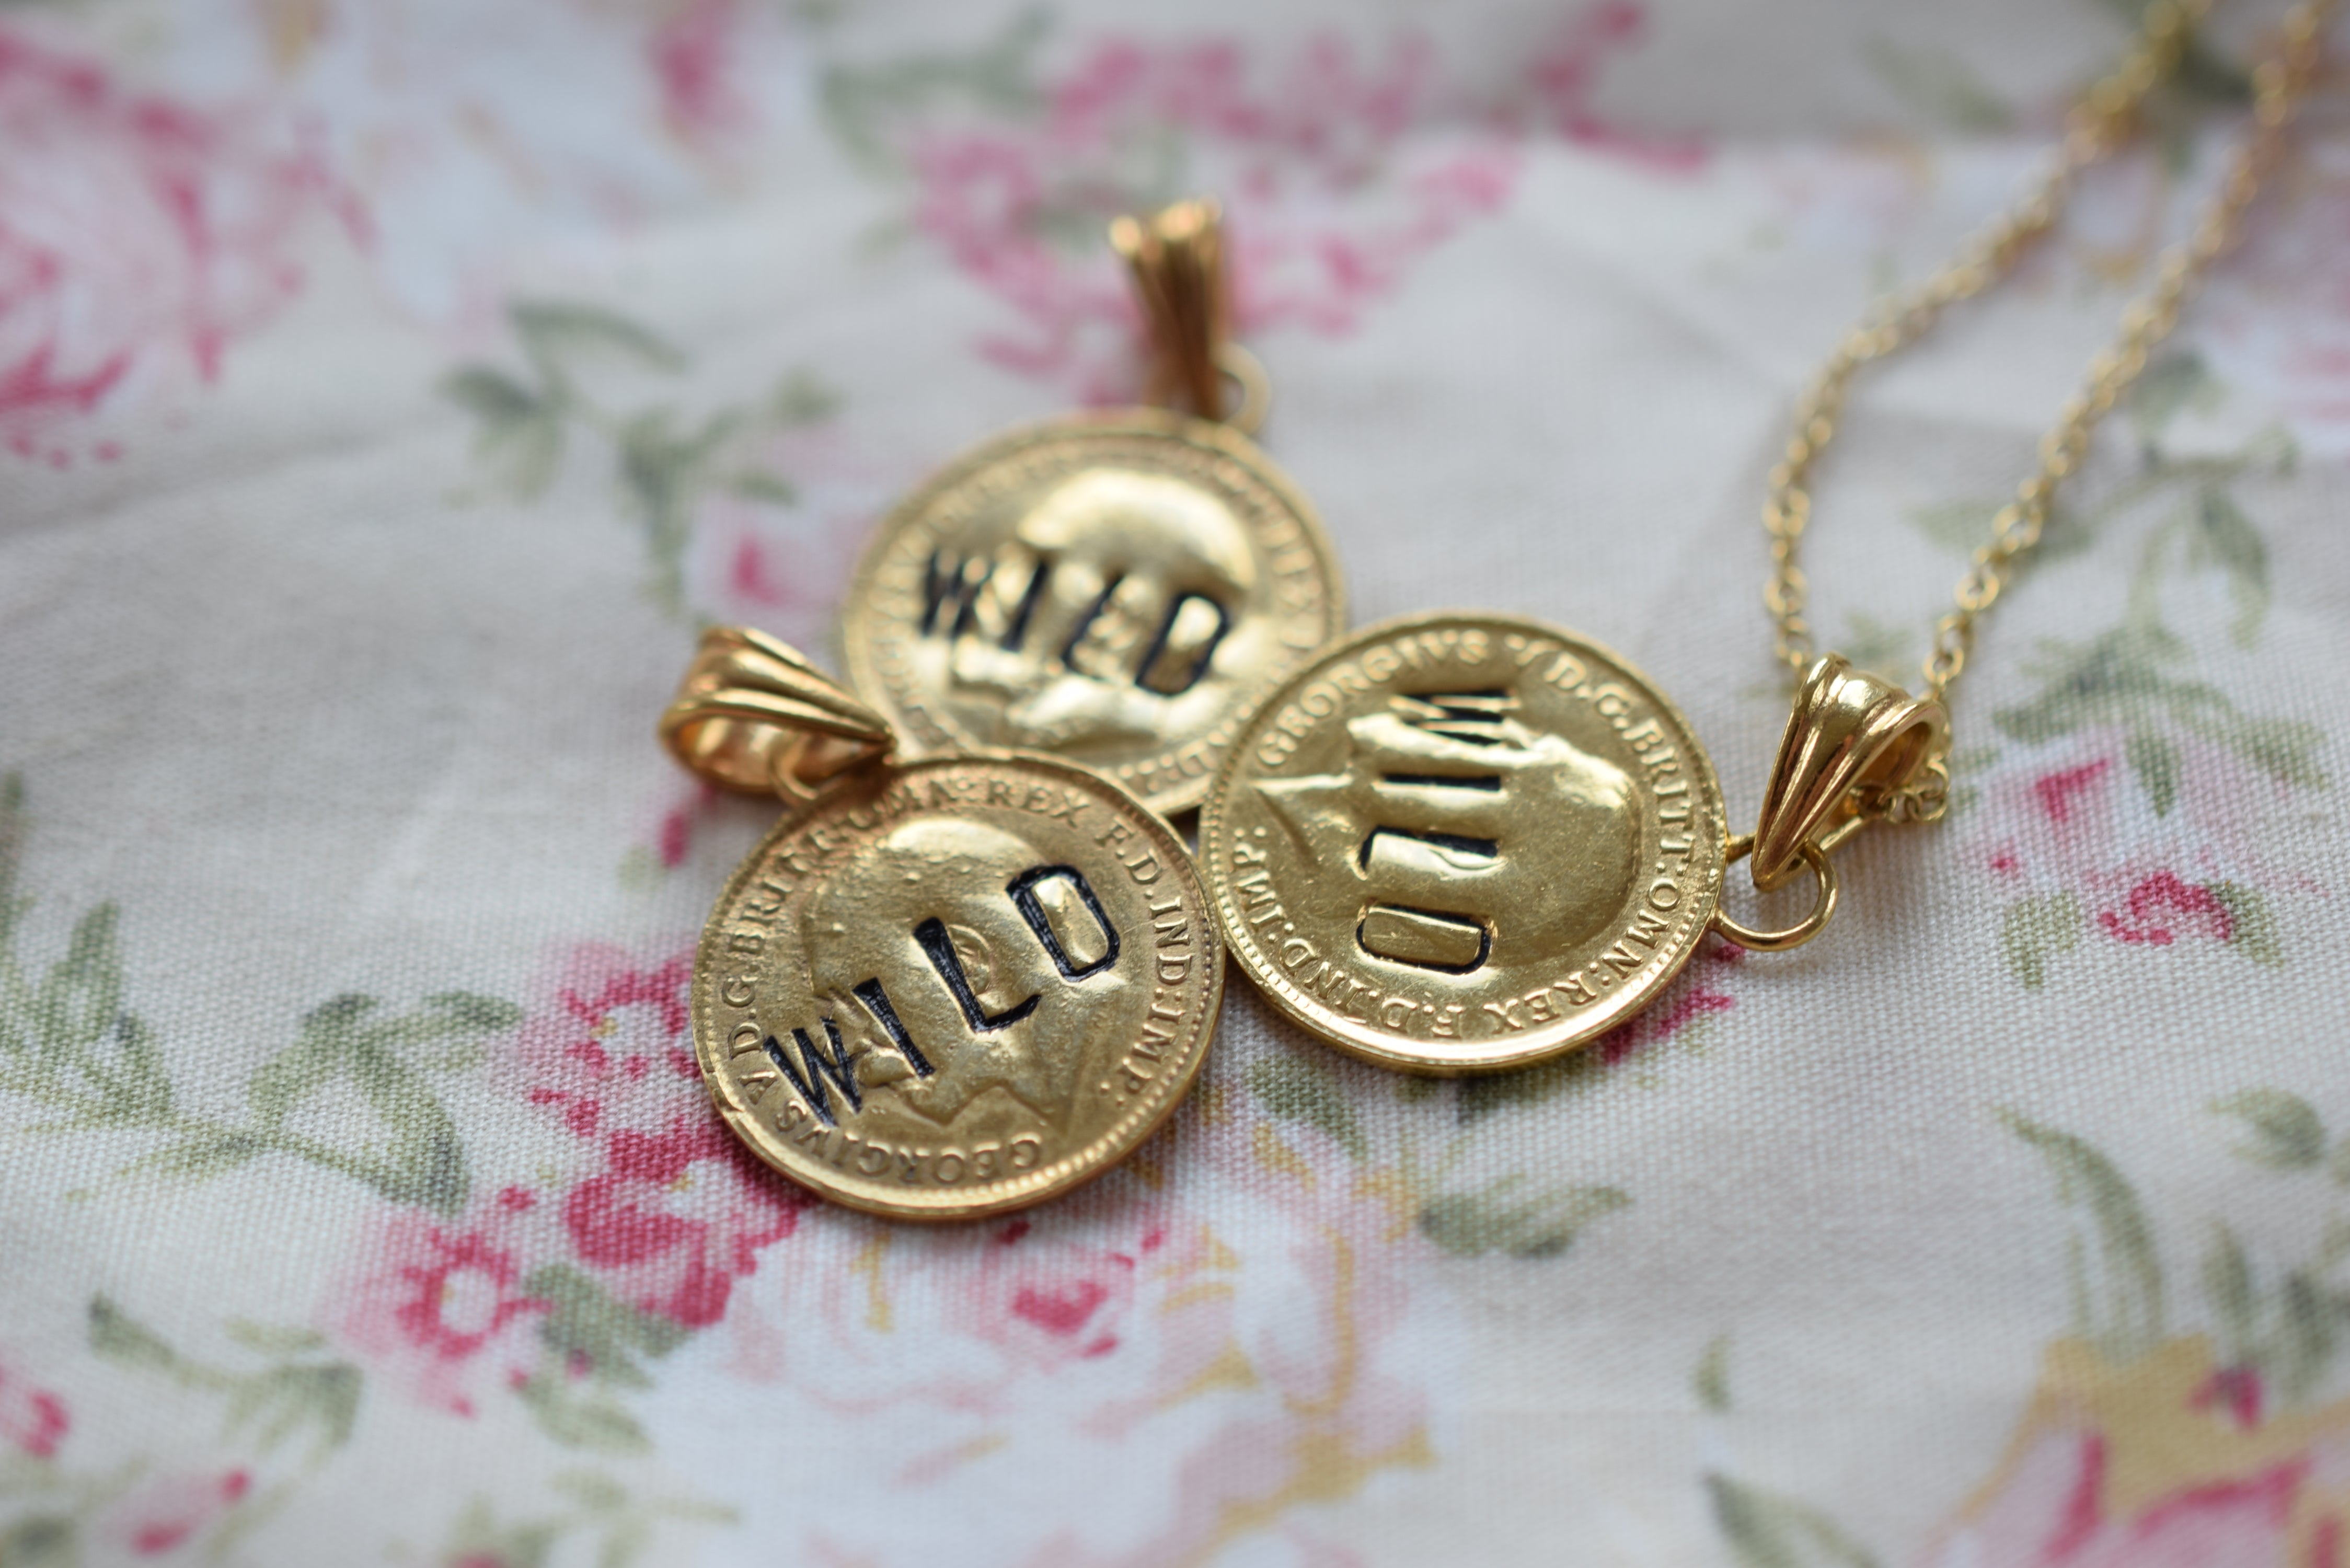 ANTIQUE SILVER THREE PENCE COIN NECKLACE 'WILD' IN GOLD